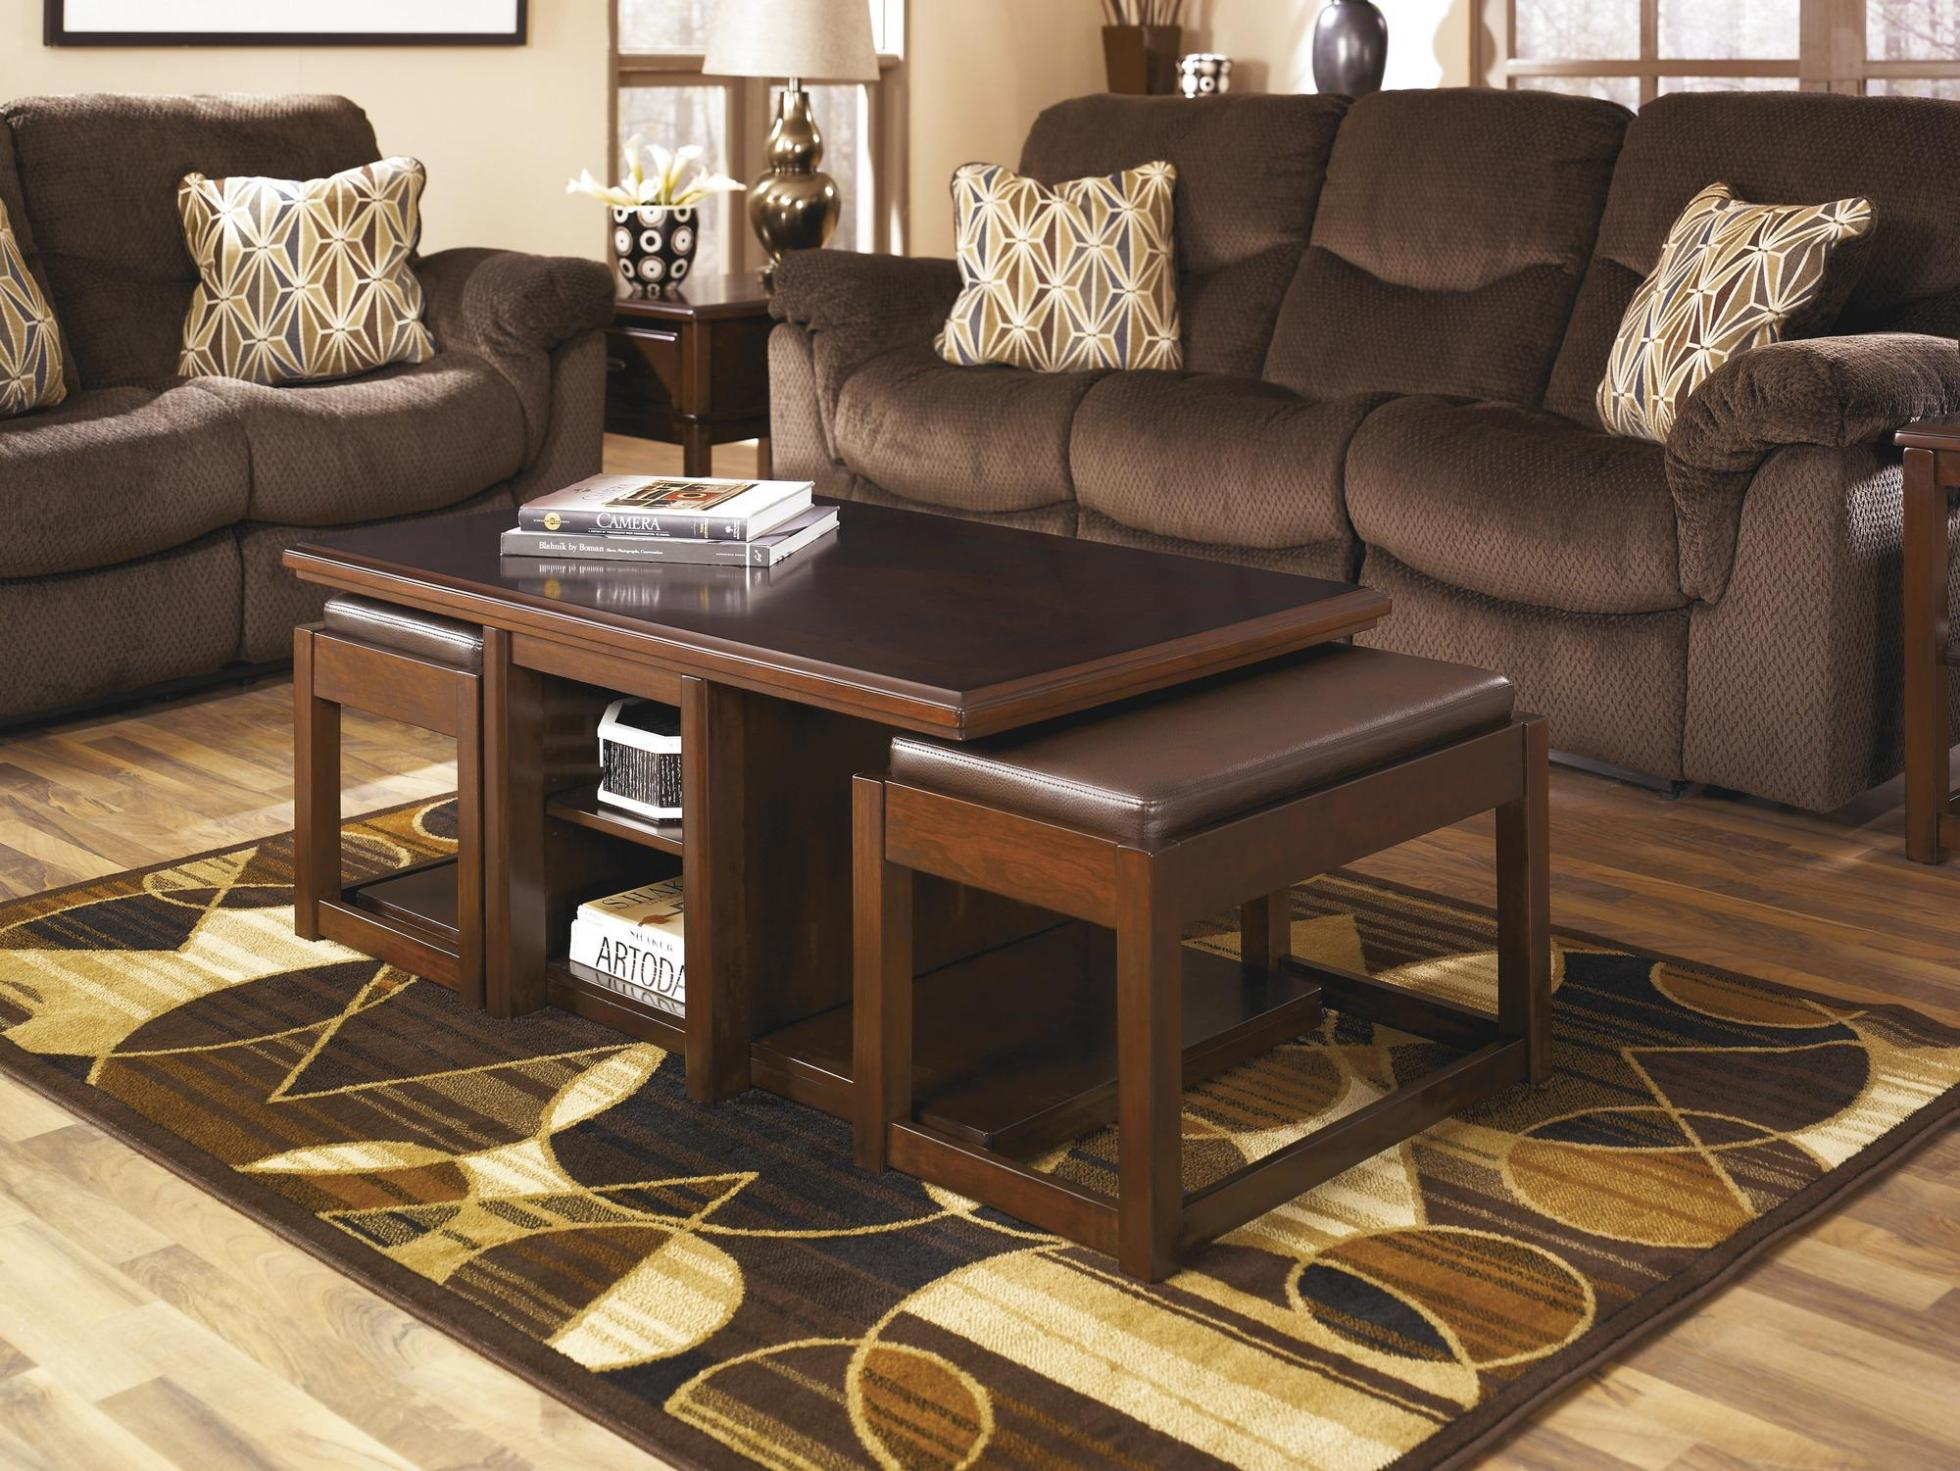 Fill Contemporary Living Room with Wooden Coffee Table with Stools and Fluffy Sofas on Hardwood Flooring